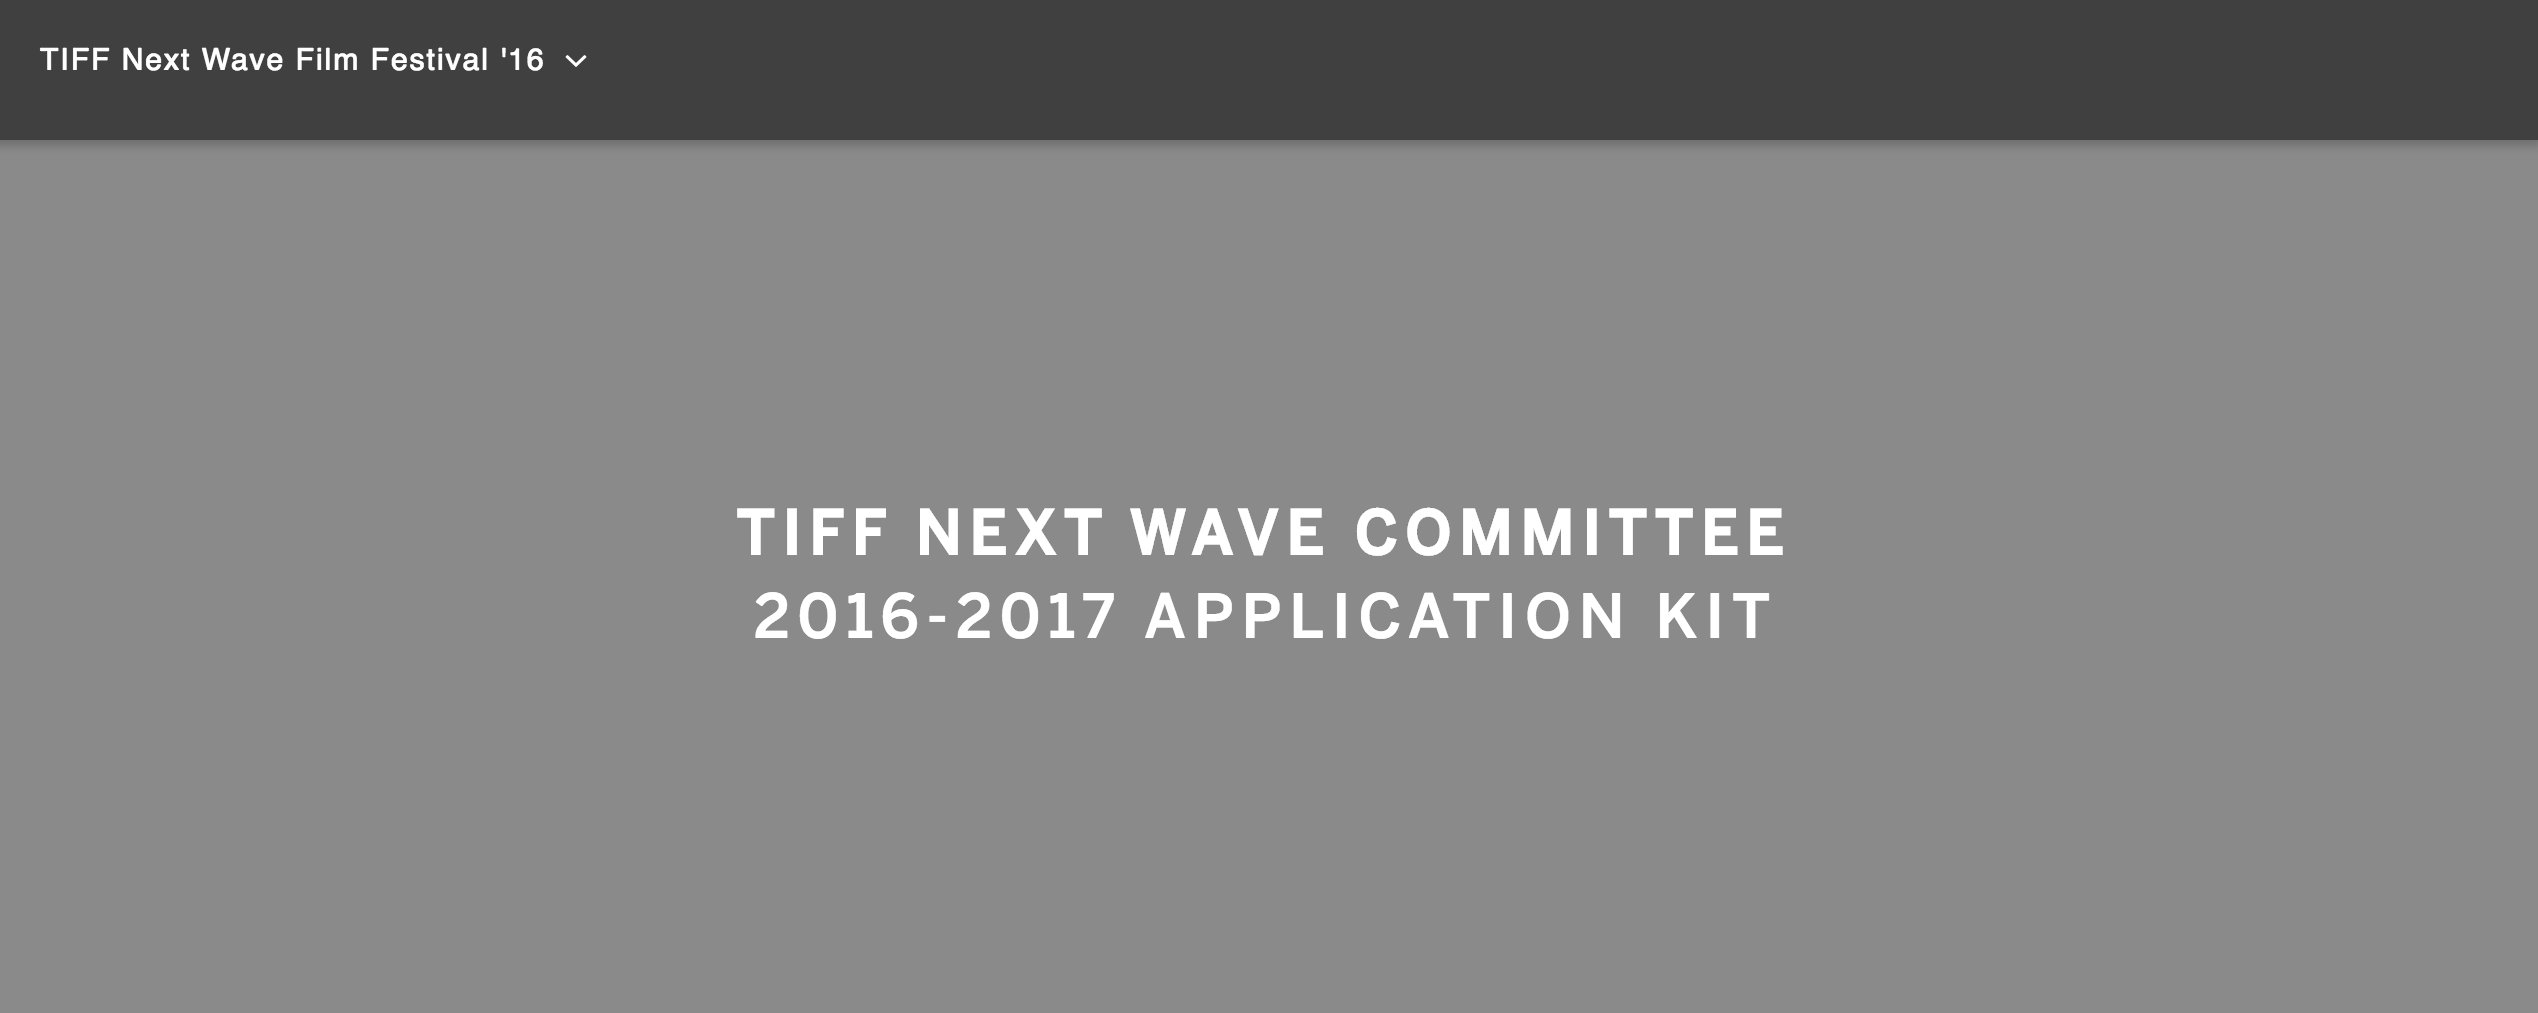 TIFF Next Wave Committee Applications are Available